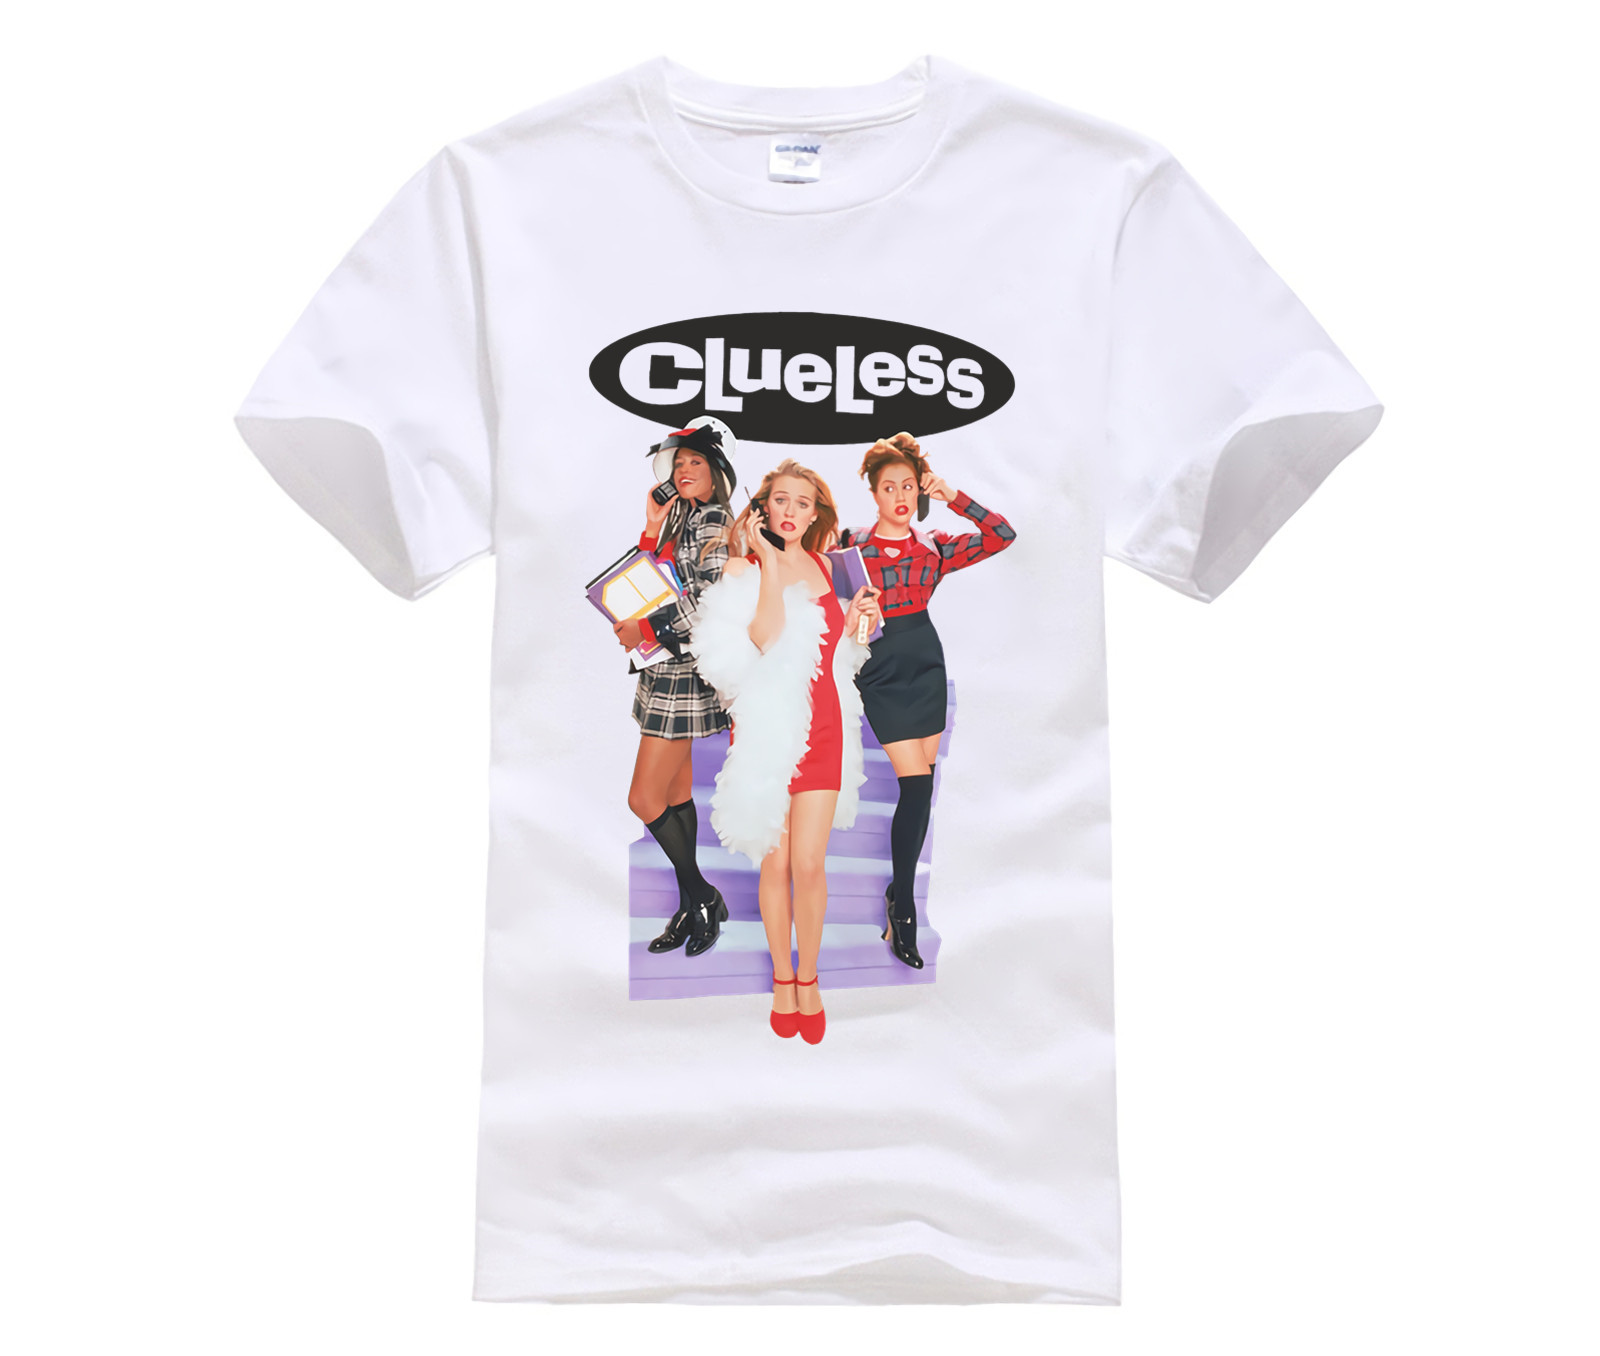 Latest Fun T-shirt Top Casual Wear Clueless white t shirt high school movie 1995 Amy Alicia Brittany Murphy